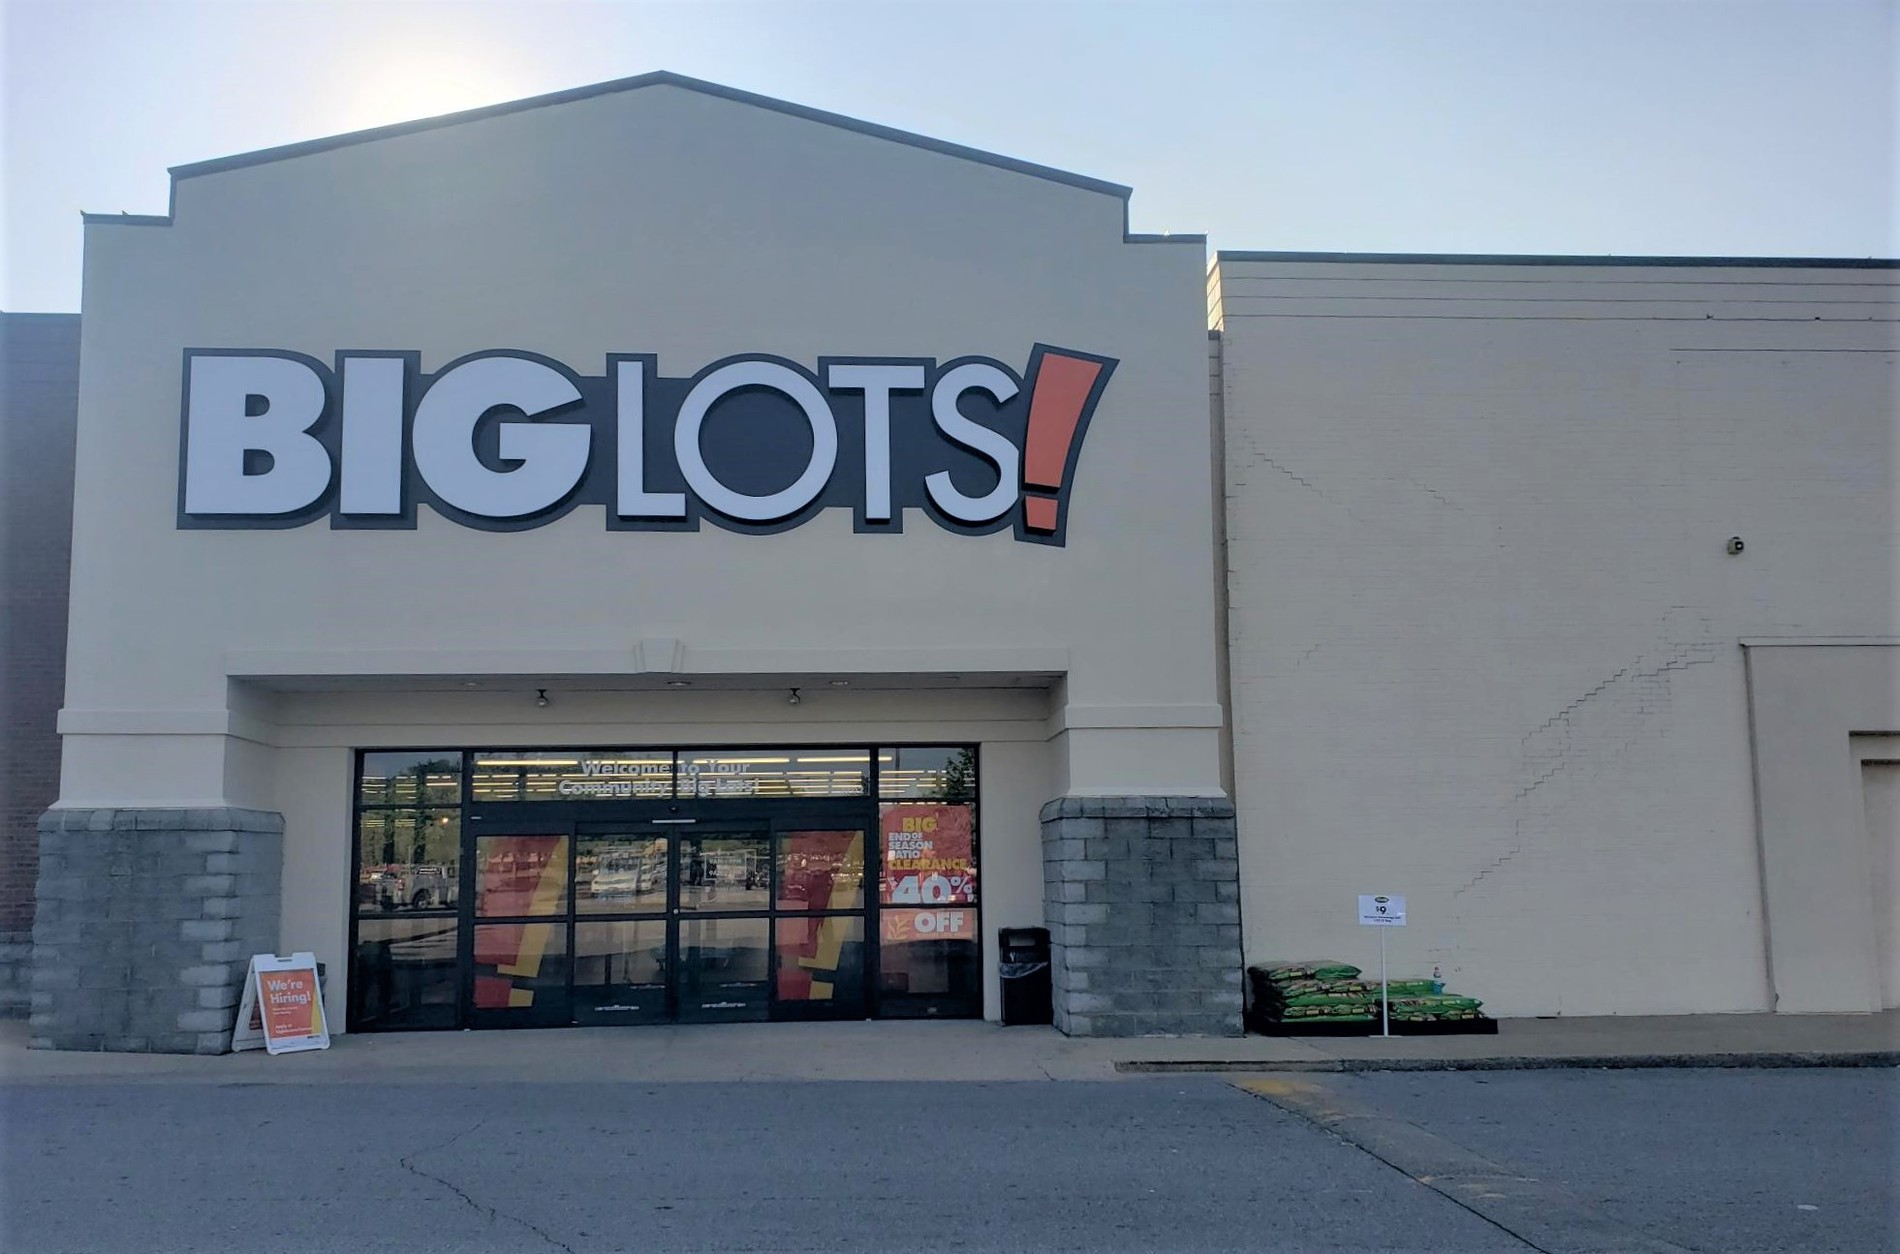 Nashville, TN Big Lots Store #5216